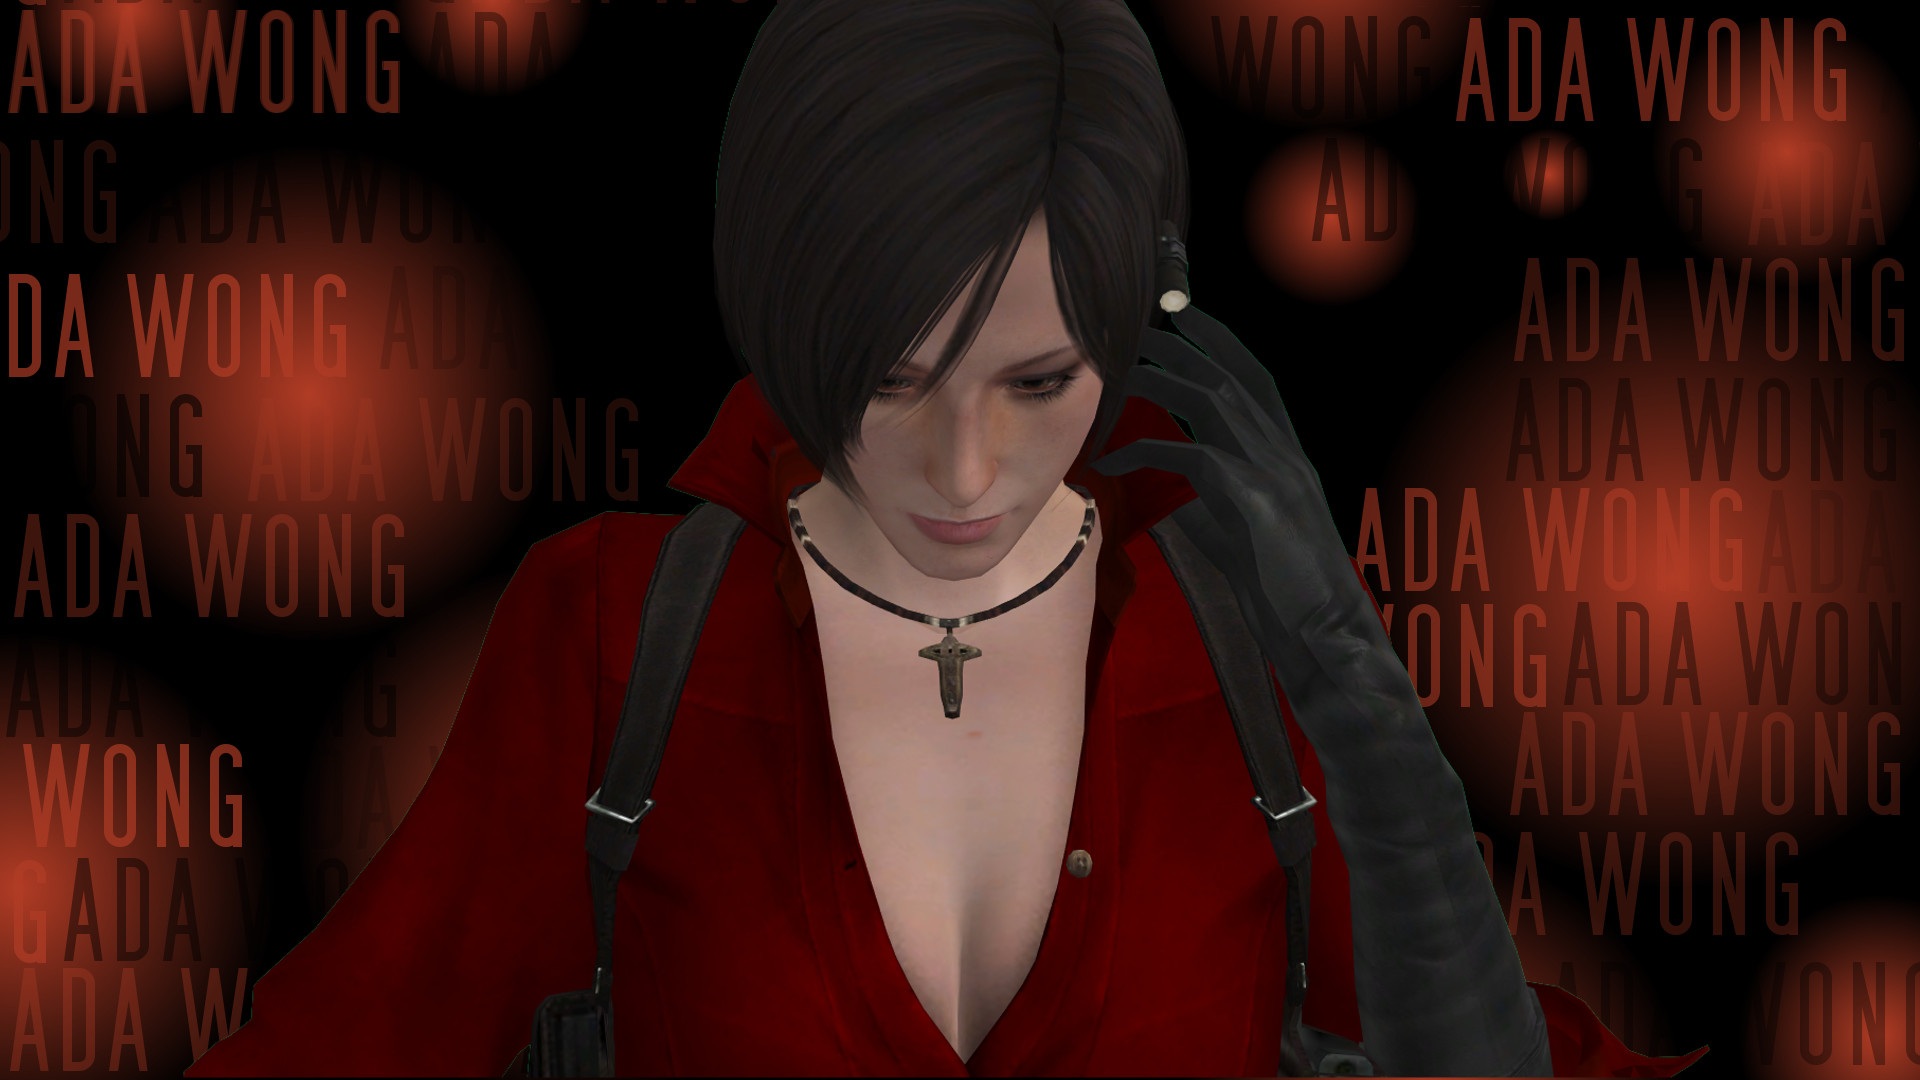 1920x1080 ... Wallpaper - Ada Wong - Resident Evil 6 by leo77940